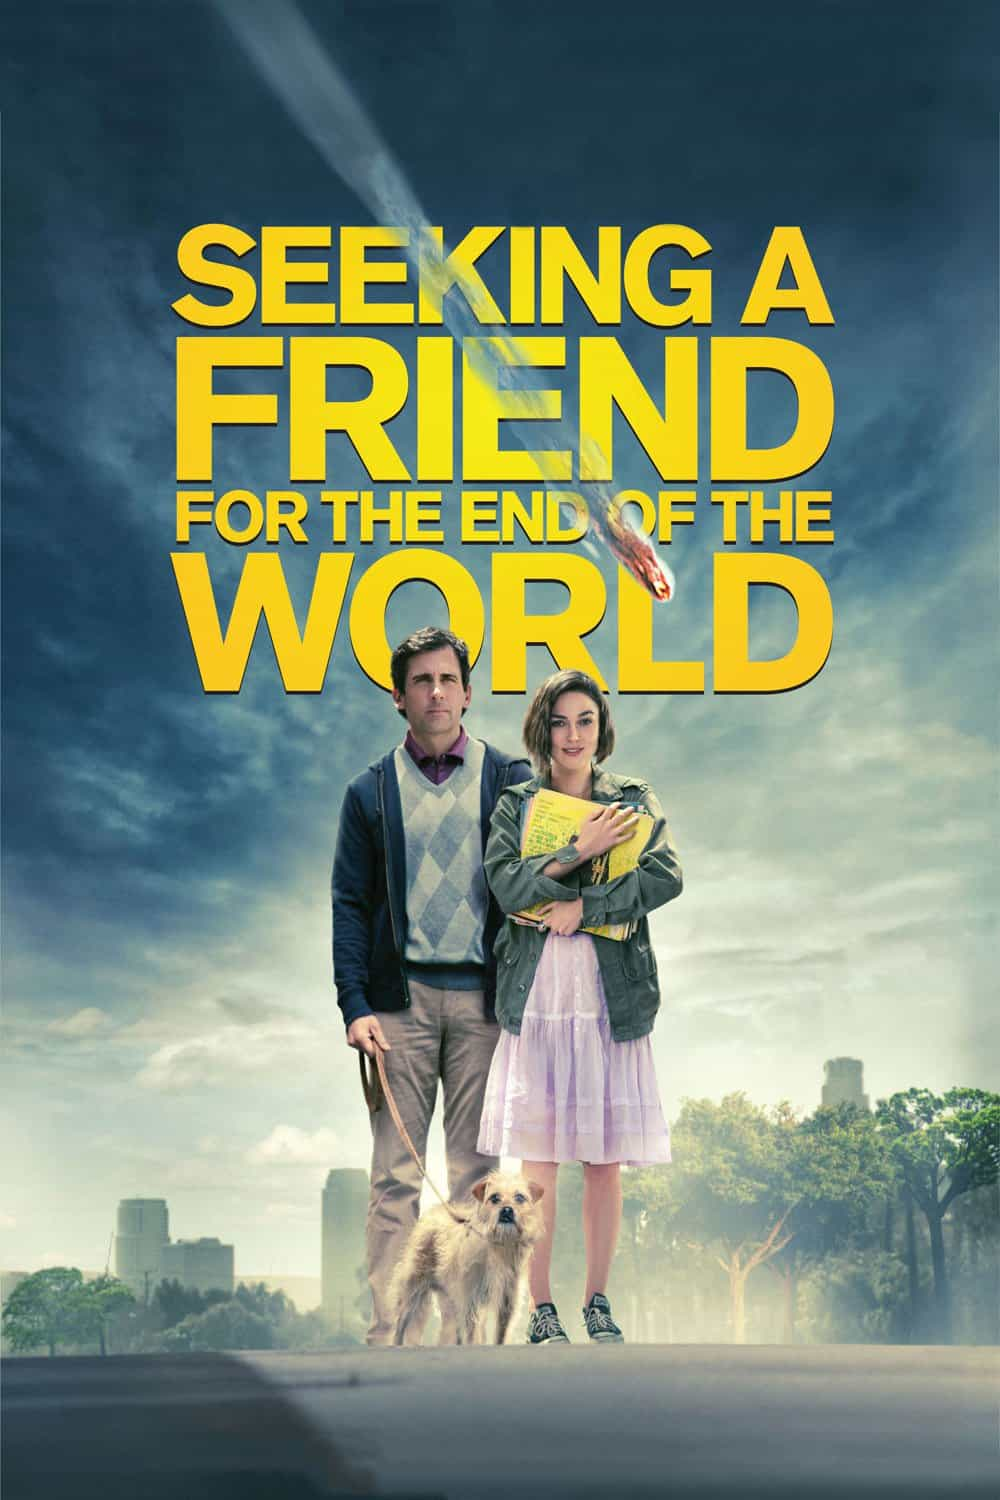 Seeking a Friend for the End of the World, 2012